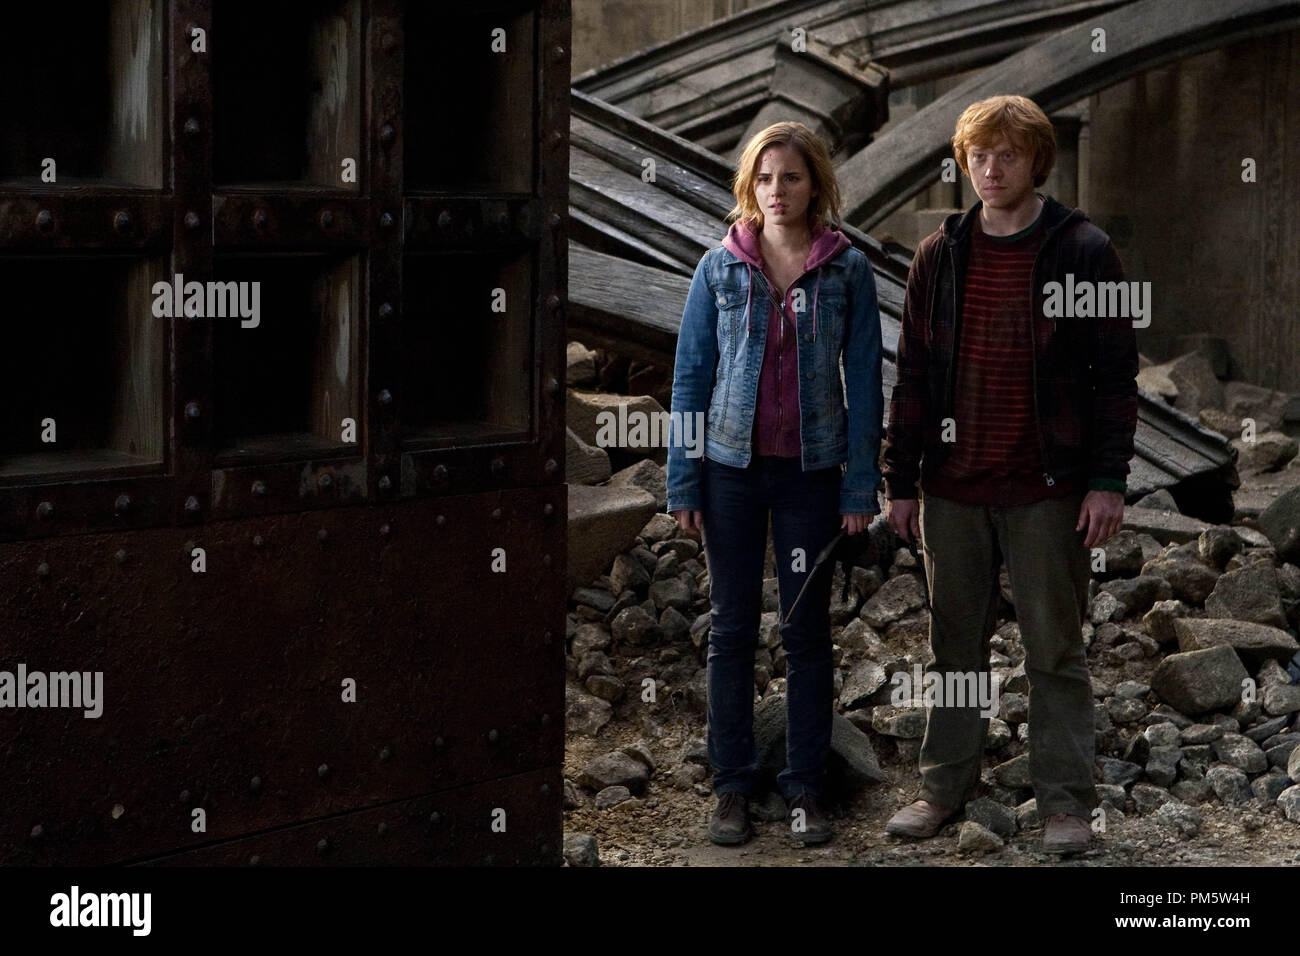 """(L-r) EMMA WATSON as Hermione Granger and RUPERT GRINT as Ron Weasley in Warner Bros. Pictures' fantasy adventure """"HARRY POTTER AND THE DEATHLY HALLOWS – PART 2,"""" a Warner Bros. Pictures release. - Stock Image"""